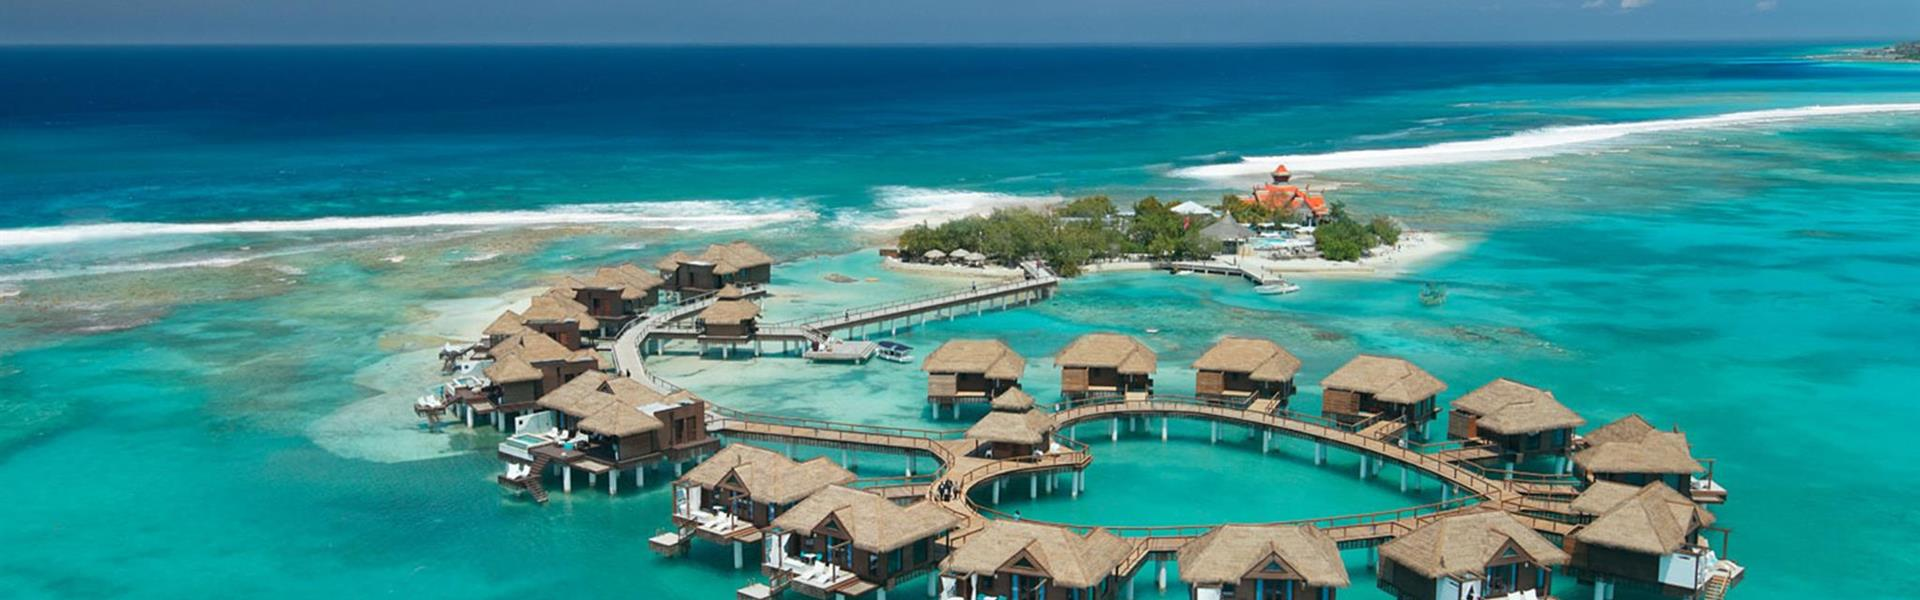 Marco Polo - Sandals Royal Caribbean Resort and Private Island -